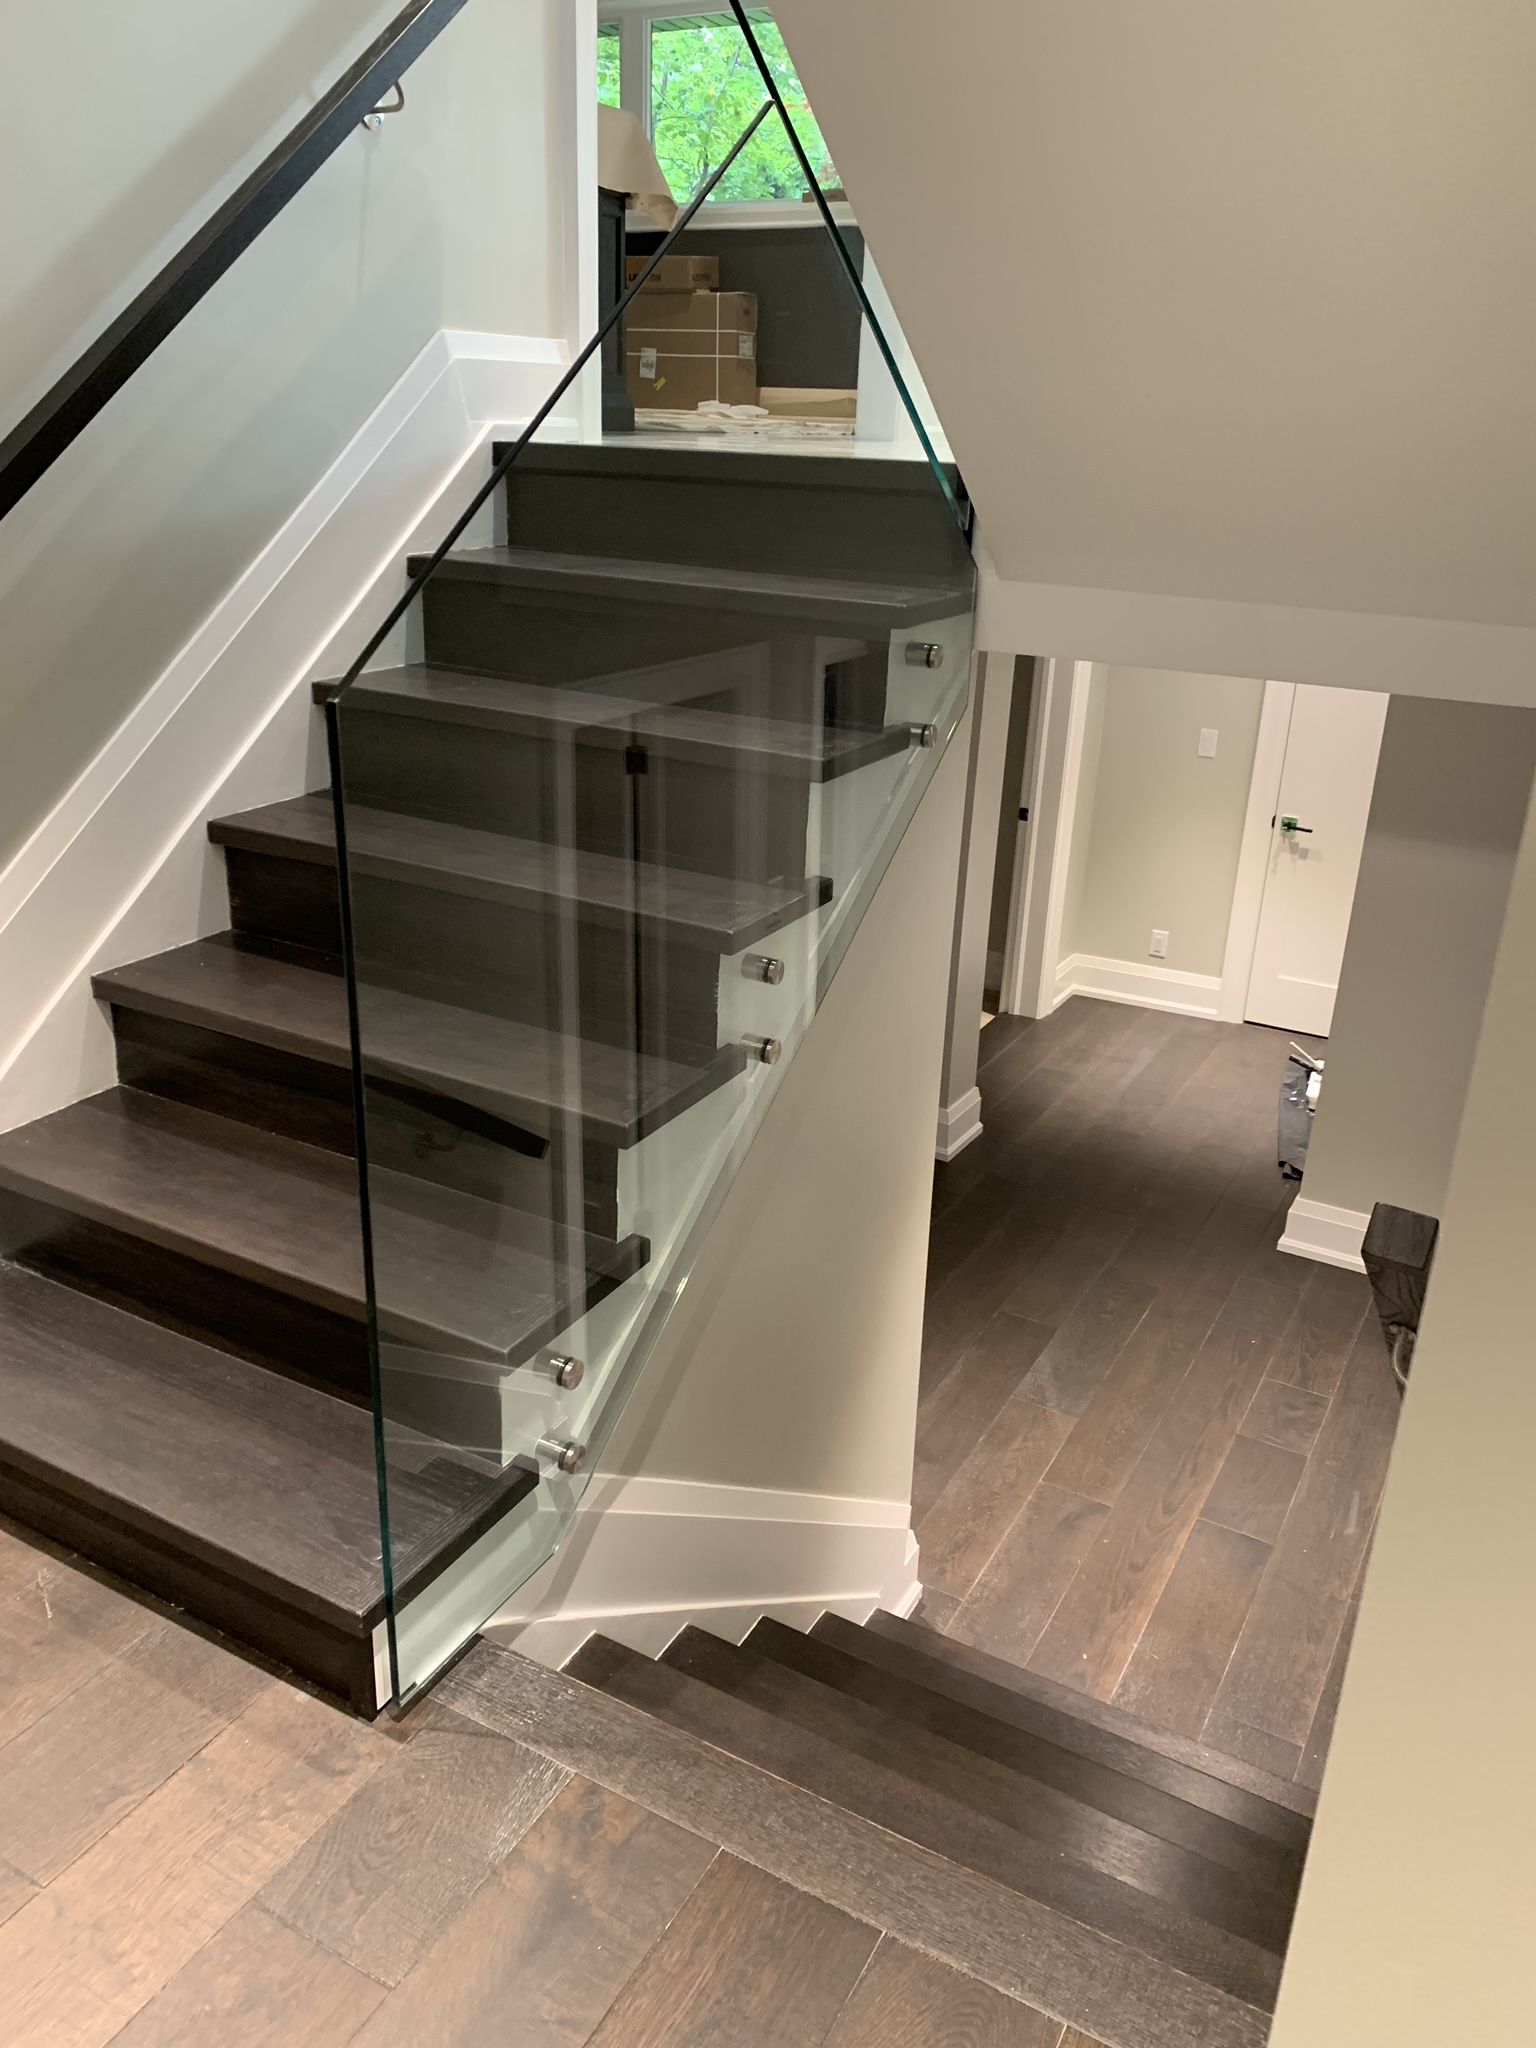 Elite Railing Systems Modern Stairs Glass Railings Installation   Wooden Handrail With Glass   Contemporary Wood Glass   Oak   Timber   Staircase   Steel